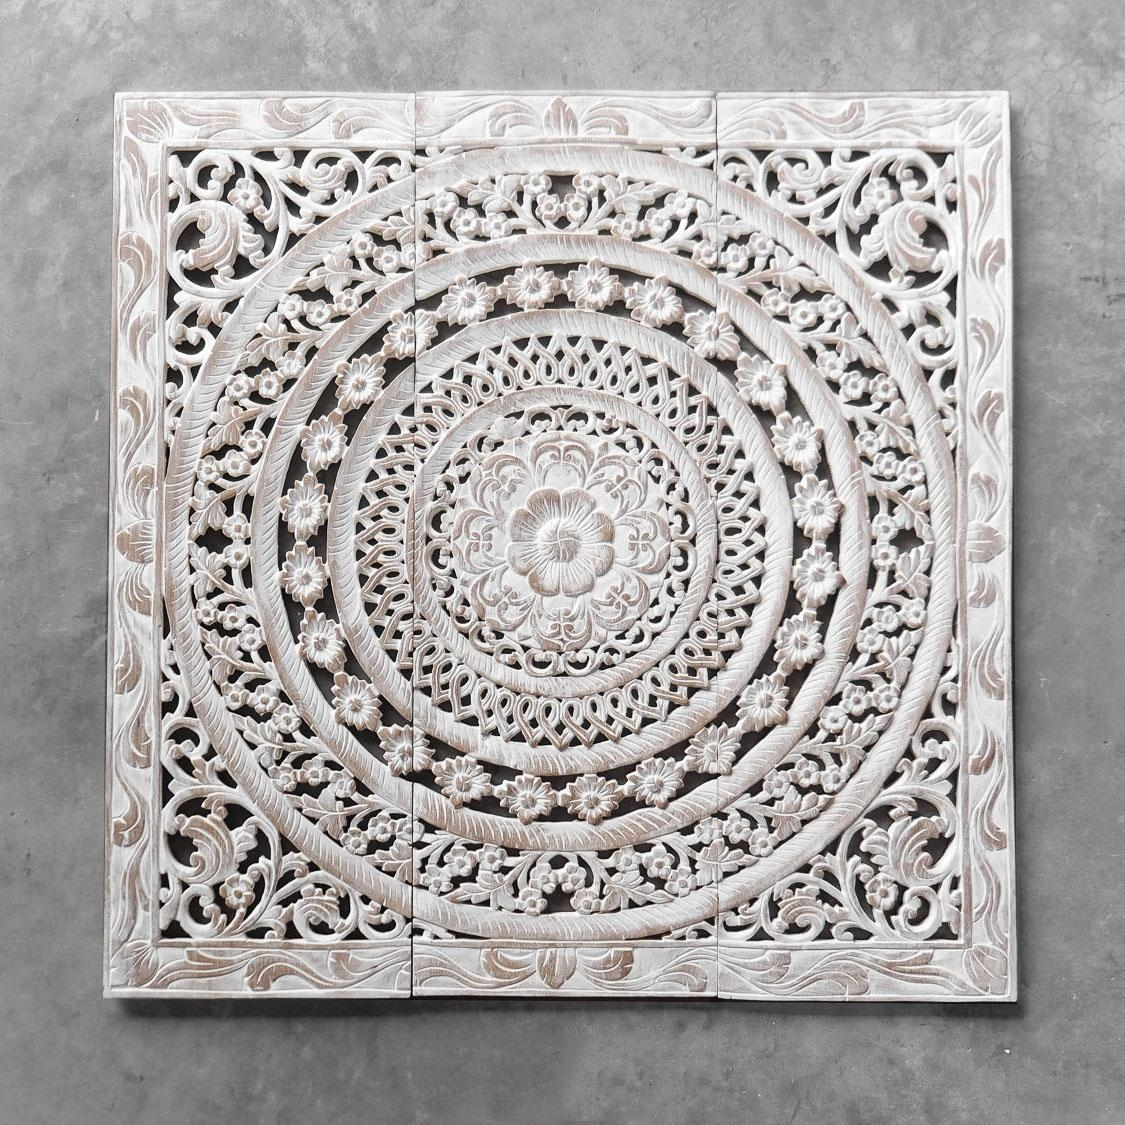 Wood Carved Wall Art | Roselawnlutheran For Asian Wall Art Panels (Image 20 of 20)